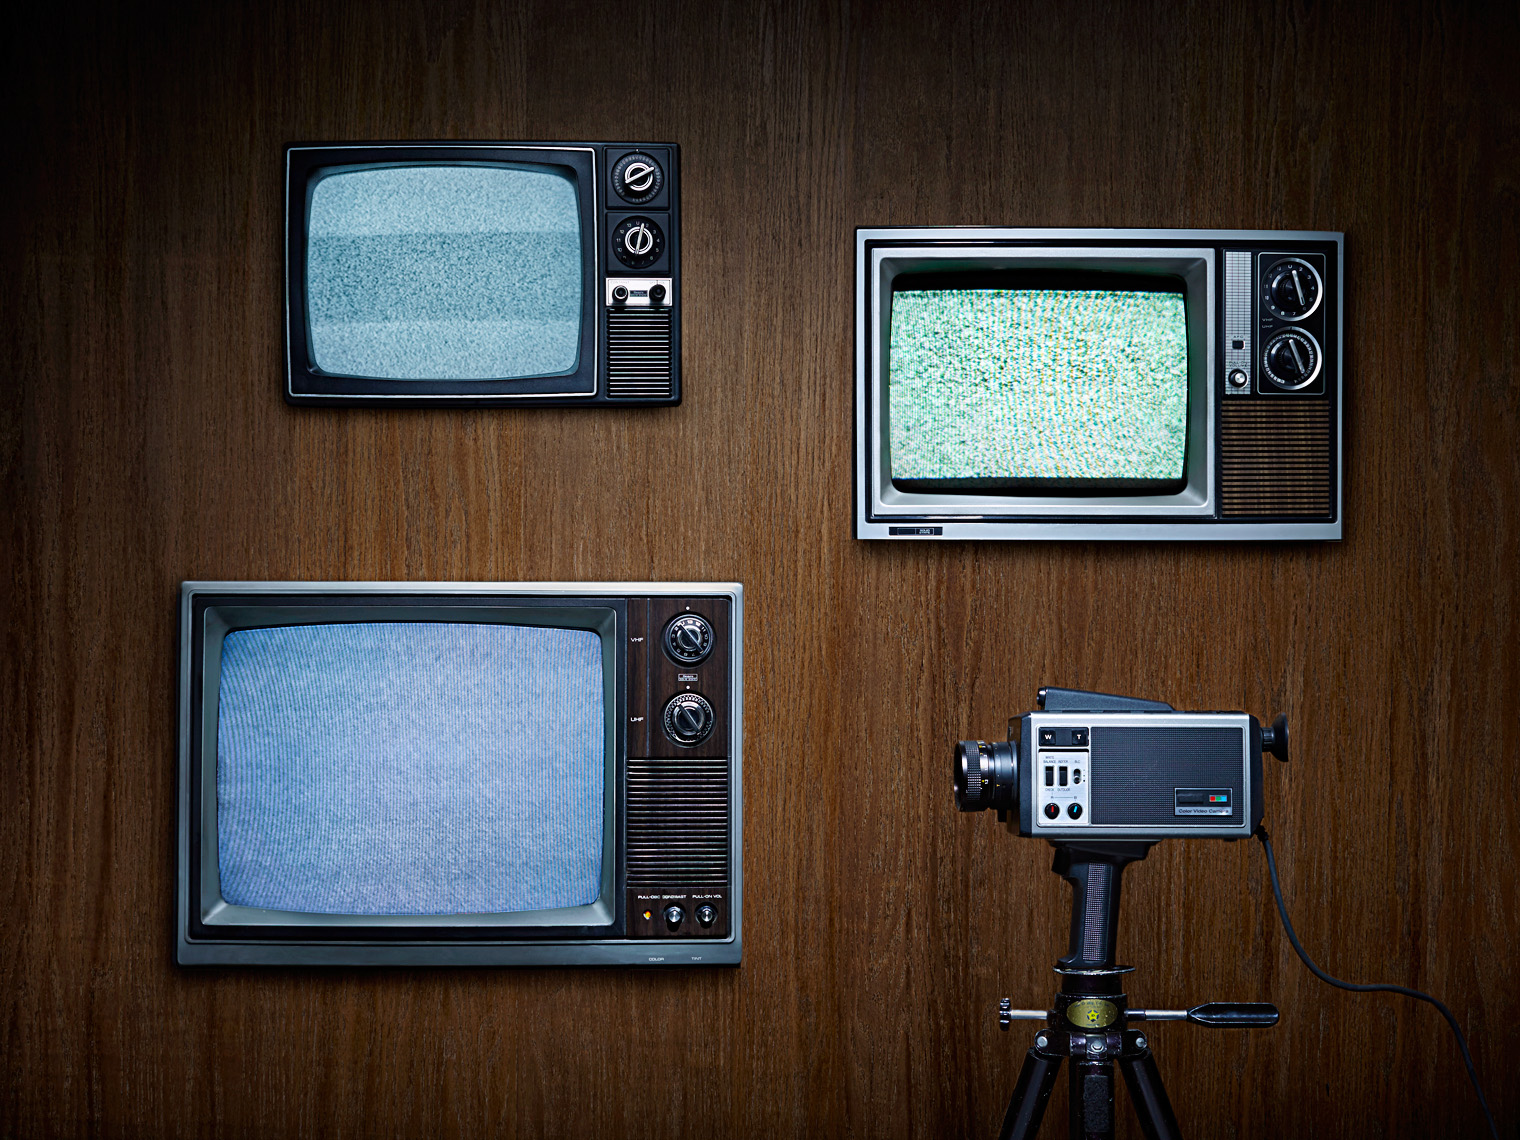 Vintage TVs conceptual - still life photographer los angeles